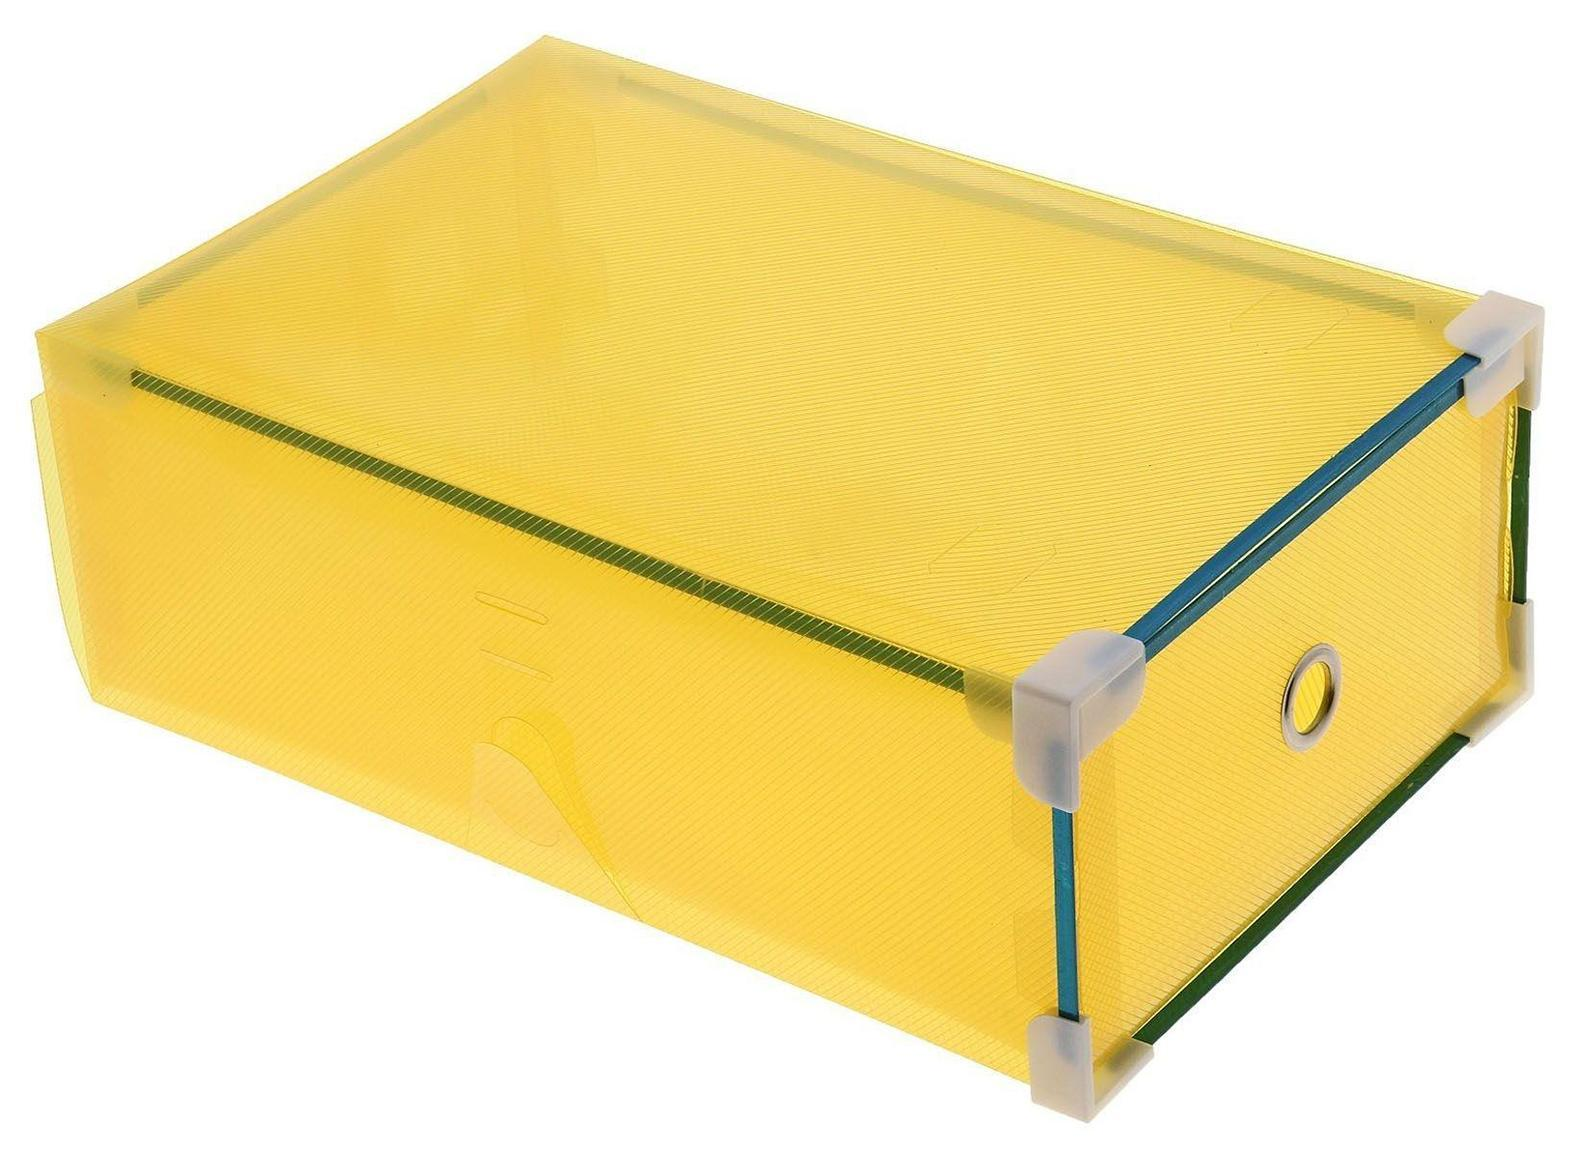 Mustard storage boxes clay to plastic soil pipe adaptor